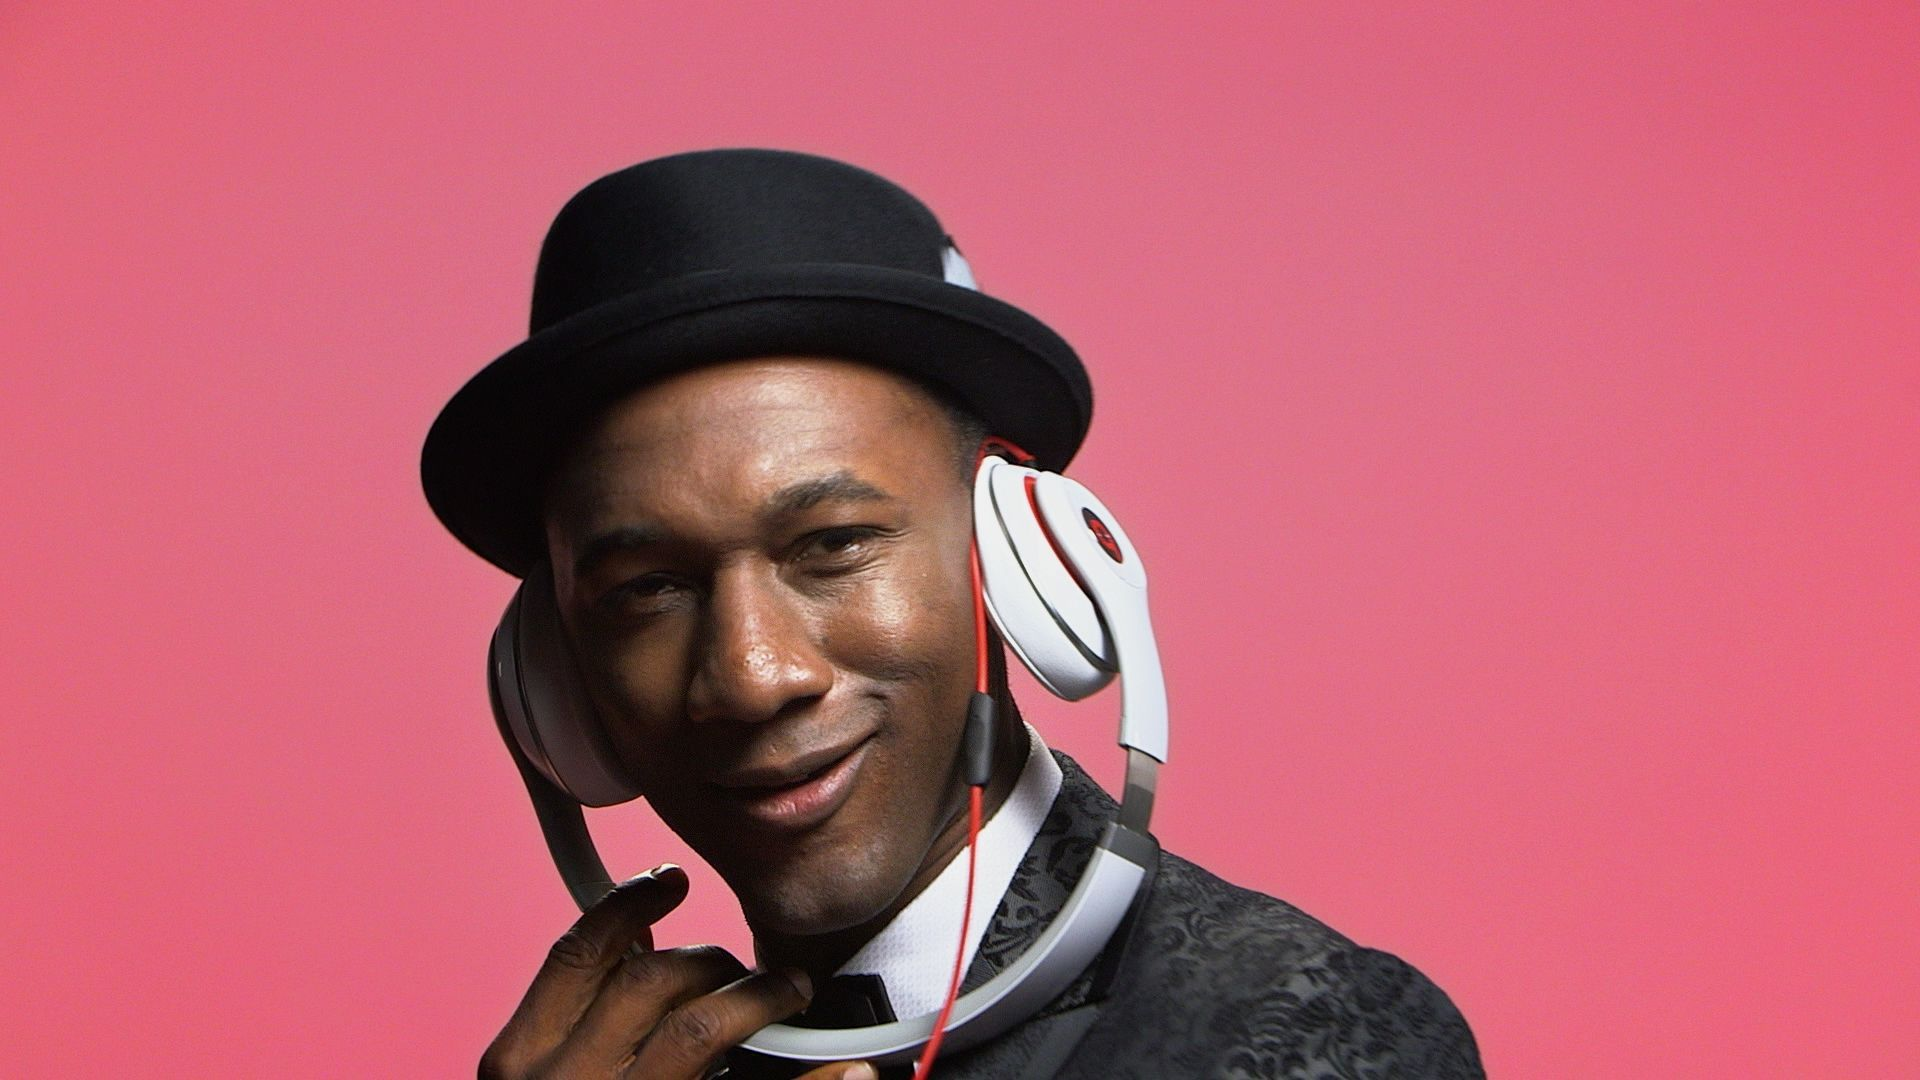 Aloe Blacc In High Resolution